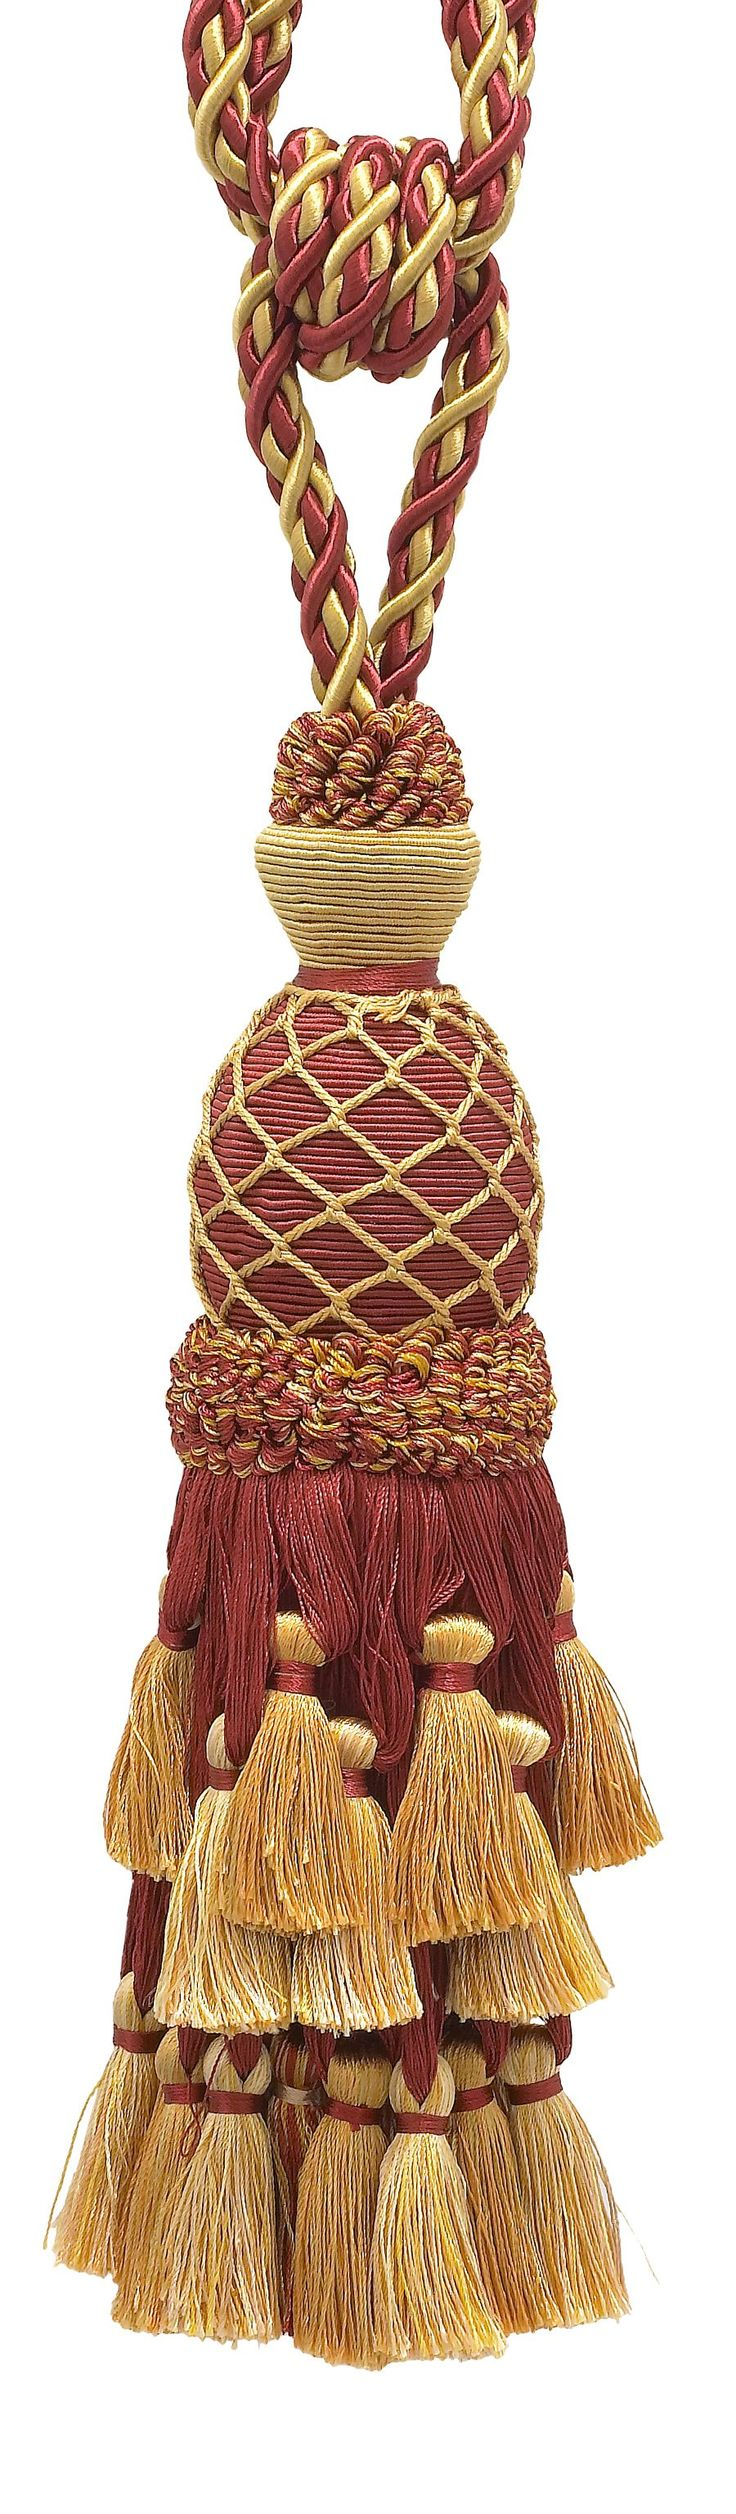 "Lavish Burgundy Red, Gold Large Curtain & Drapery Tassel Tieback / Large 11"" tassel, 34"" Spread(embrace) 7/16"" Cord, Imperial II Collection Style# TBIL-1 Color: BURGUNDY GOLD - 1253"